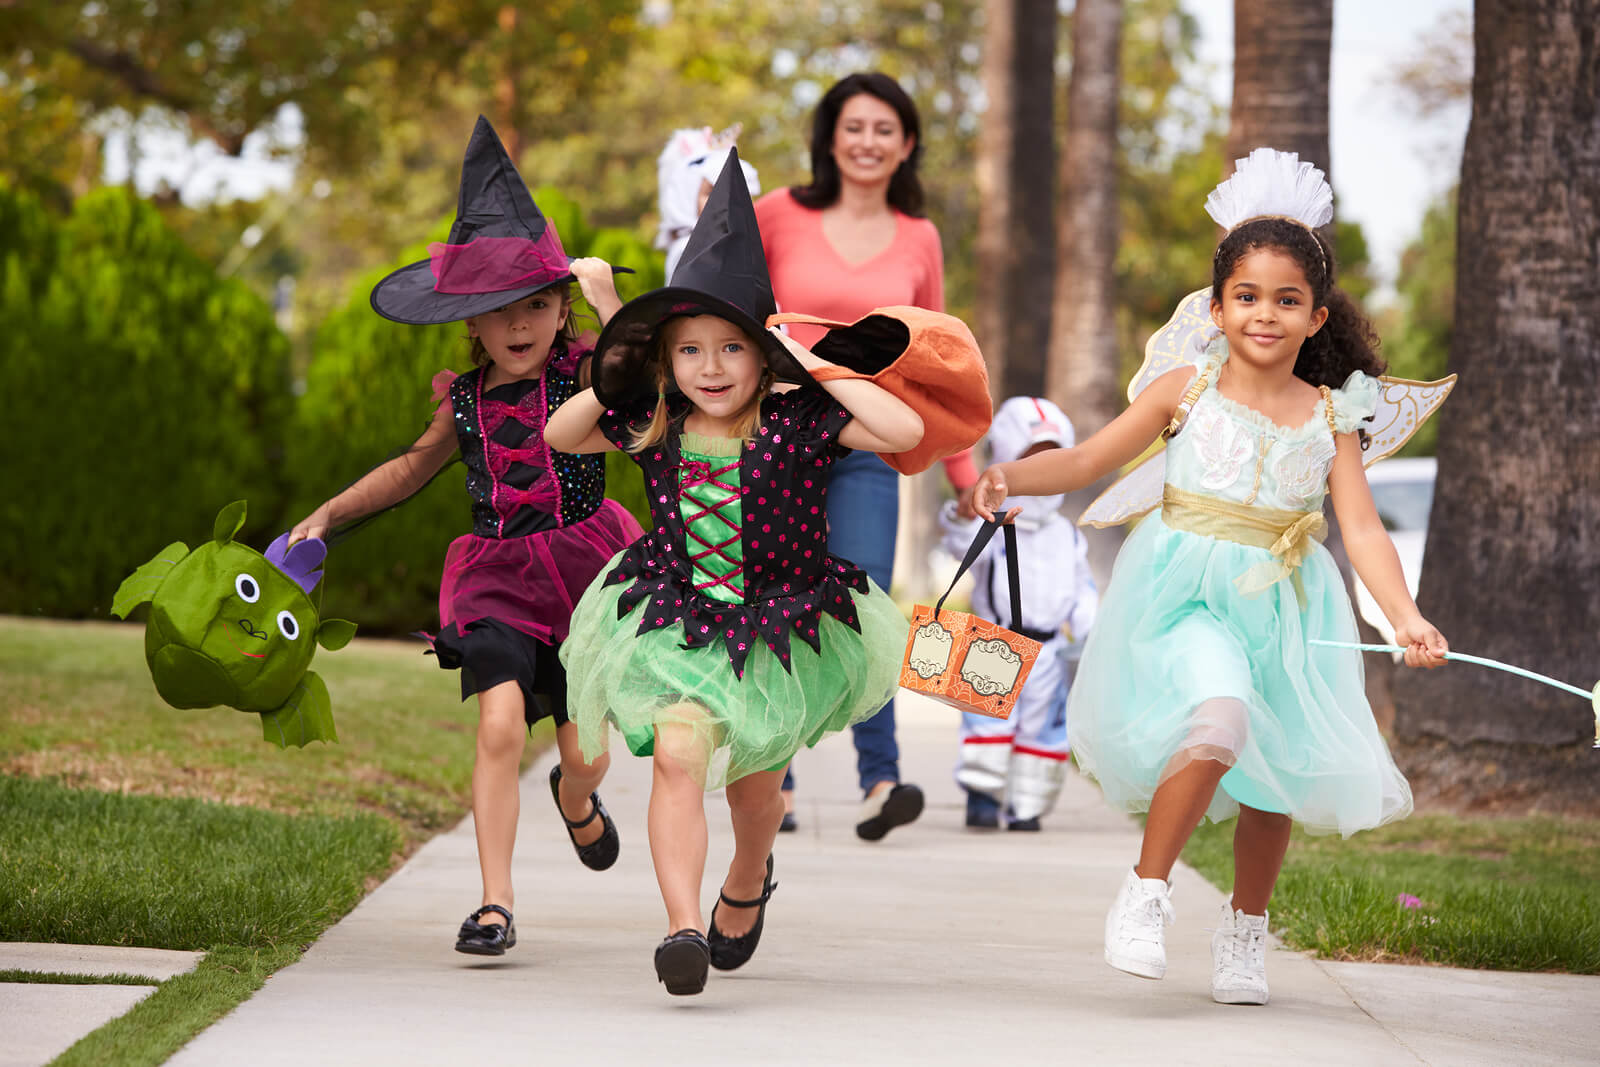 Kids Enjoying the Fun of Halloween Together